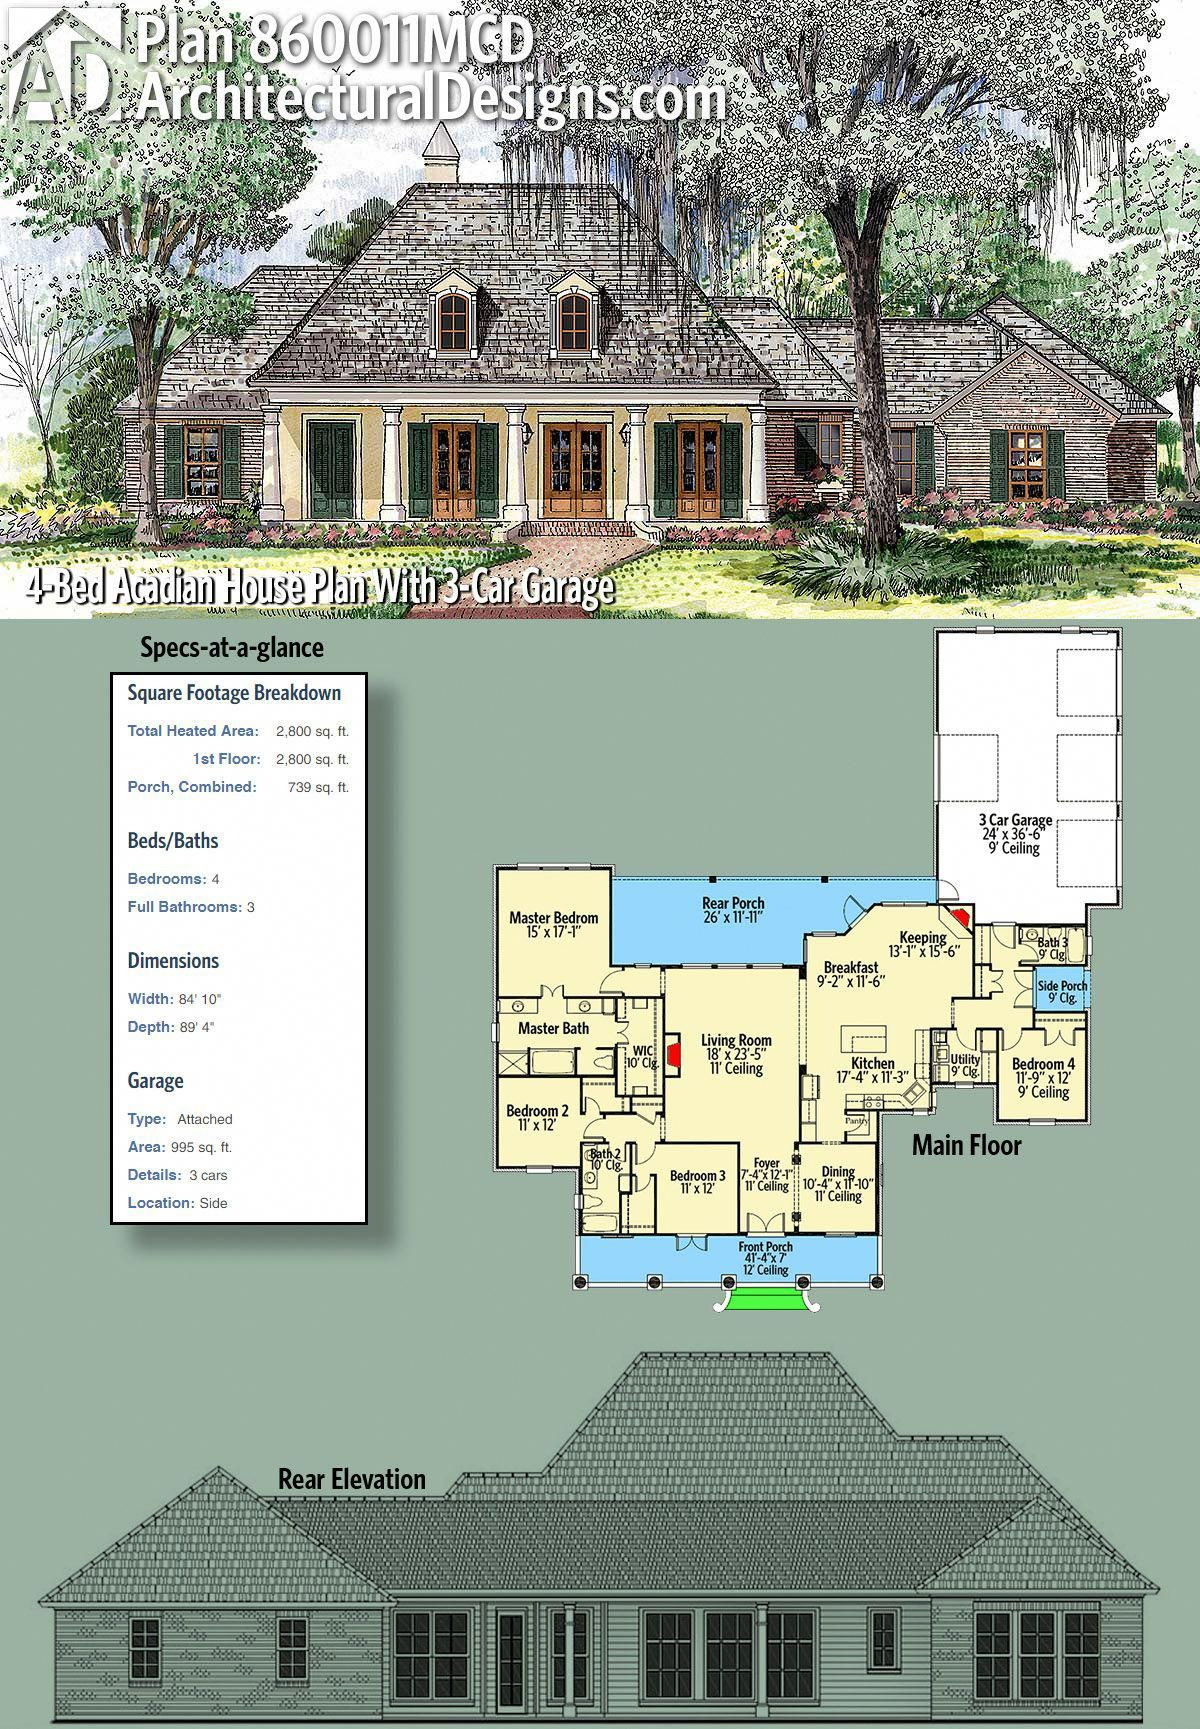 Architectural designs bed acadian style house plan mcd has  car side also rh ar pinterest